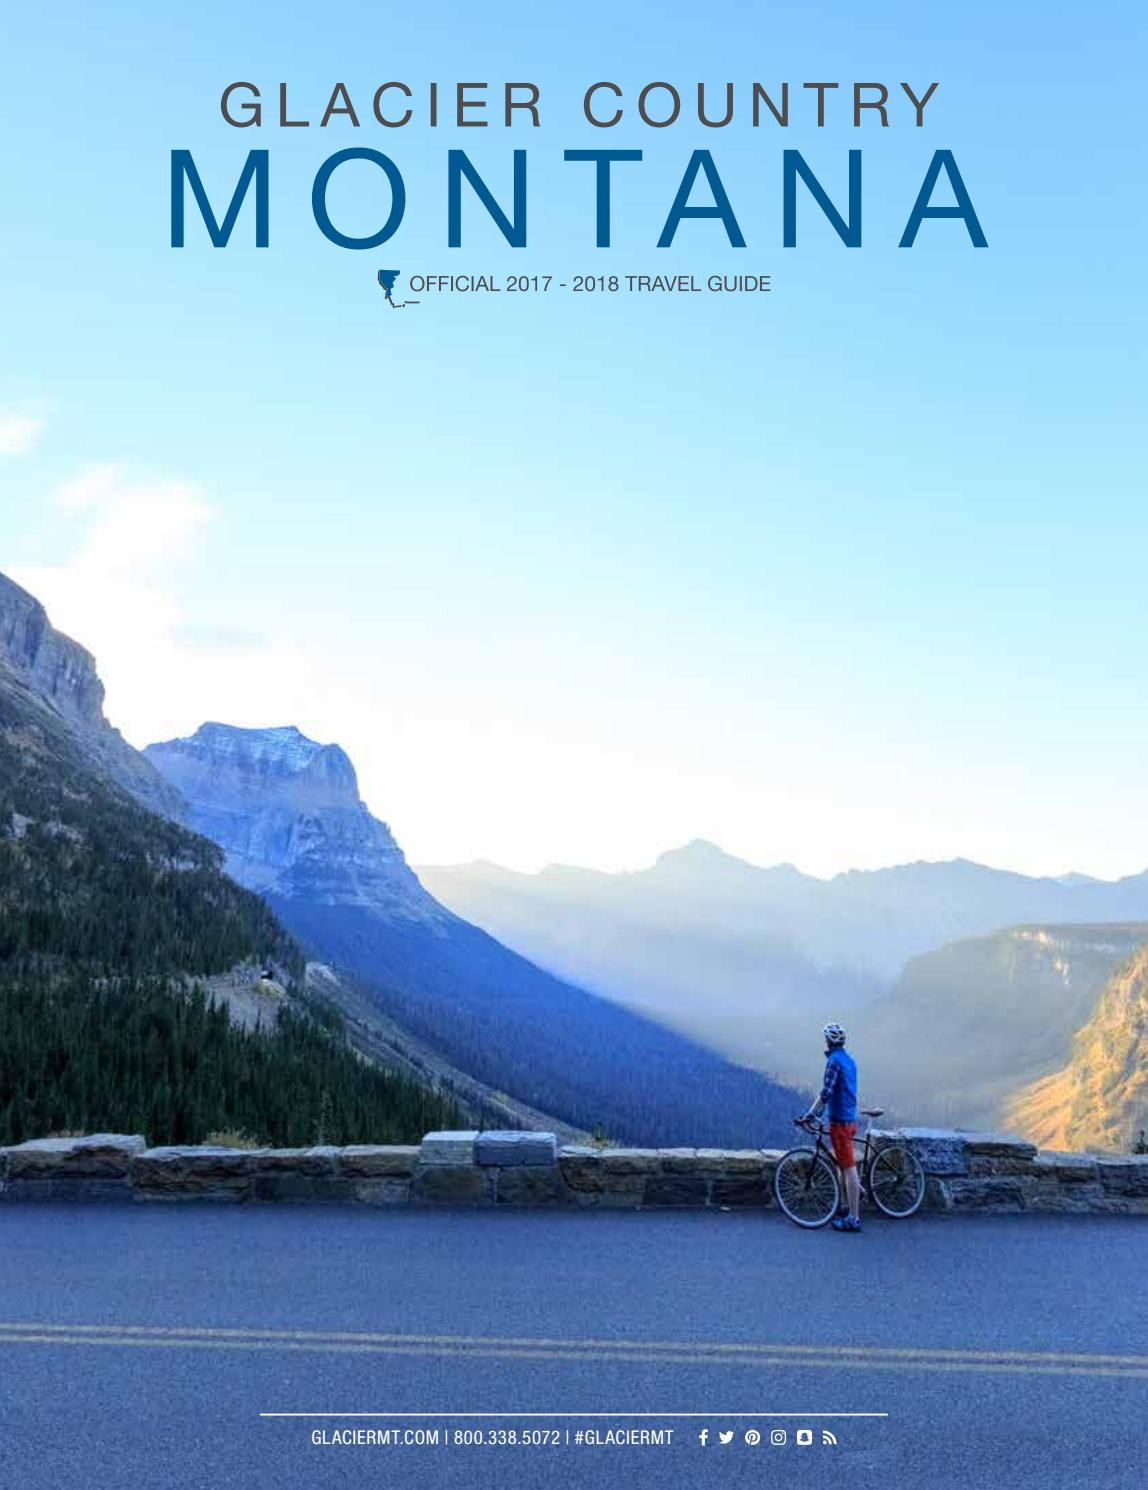 Glacier Country Montana Official 2017 - 2018 Travel Guide by